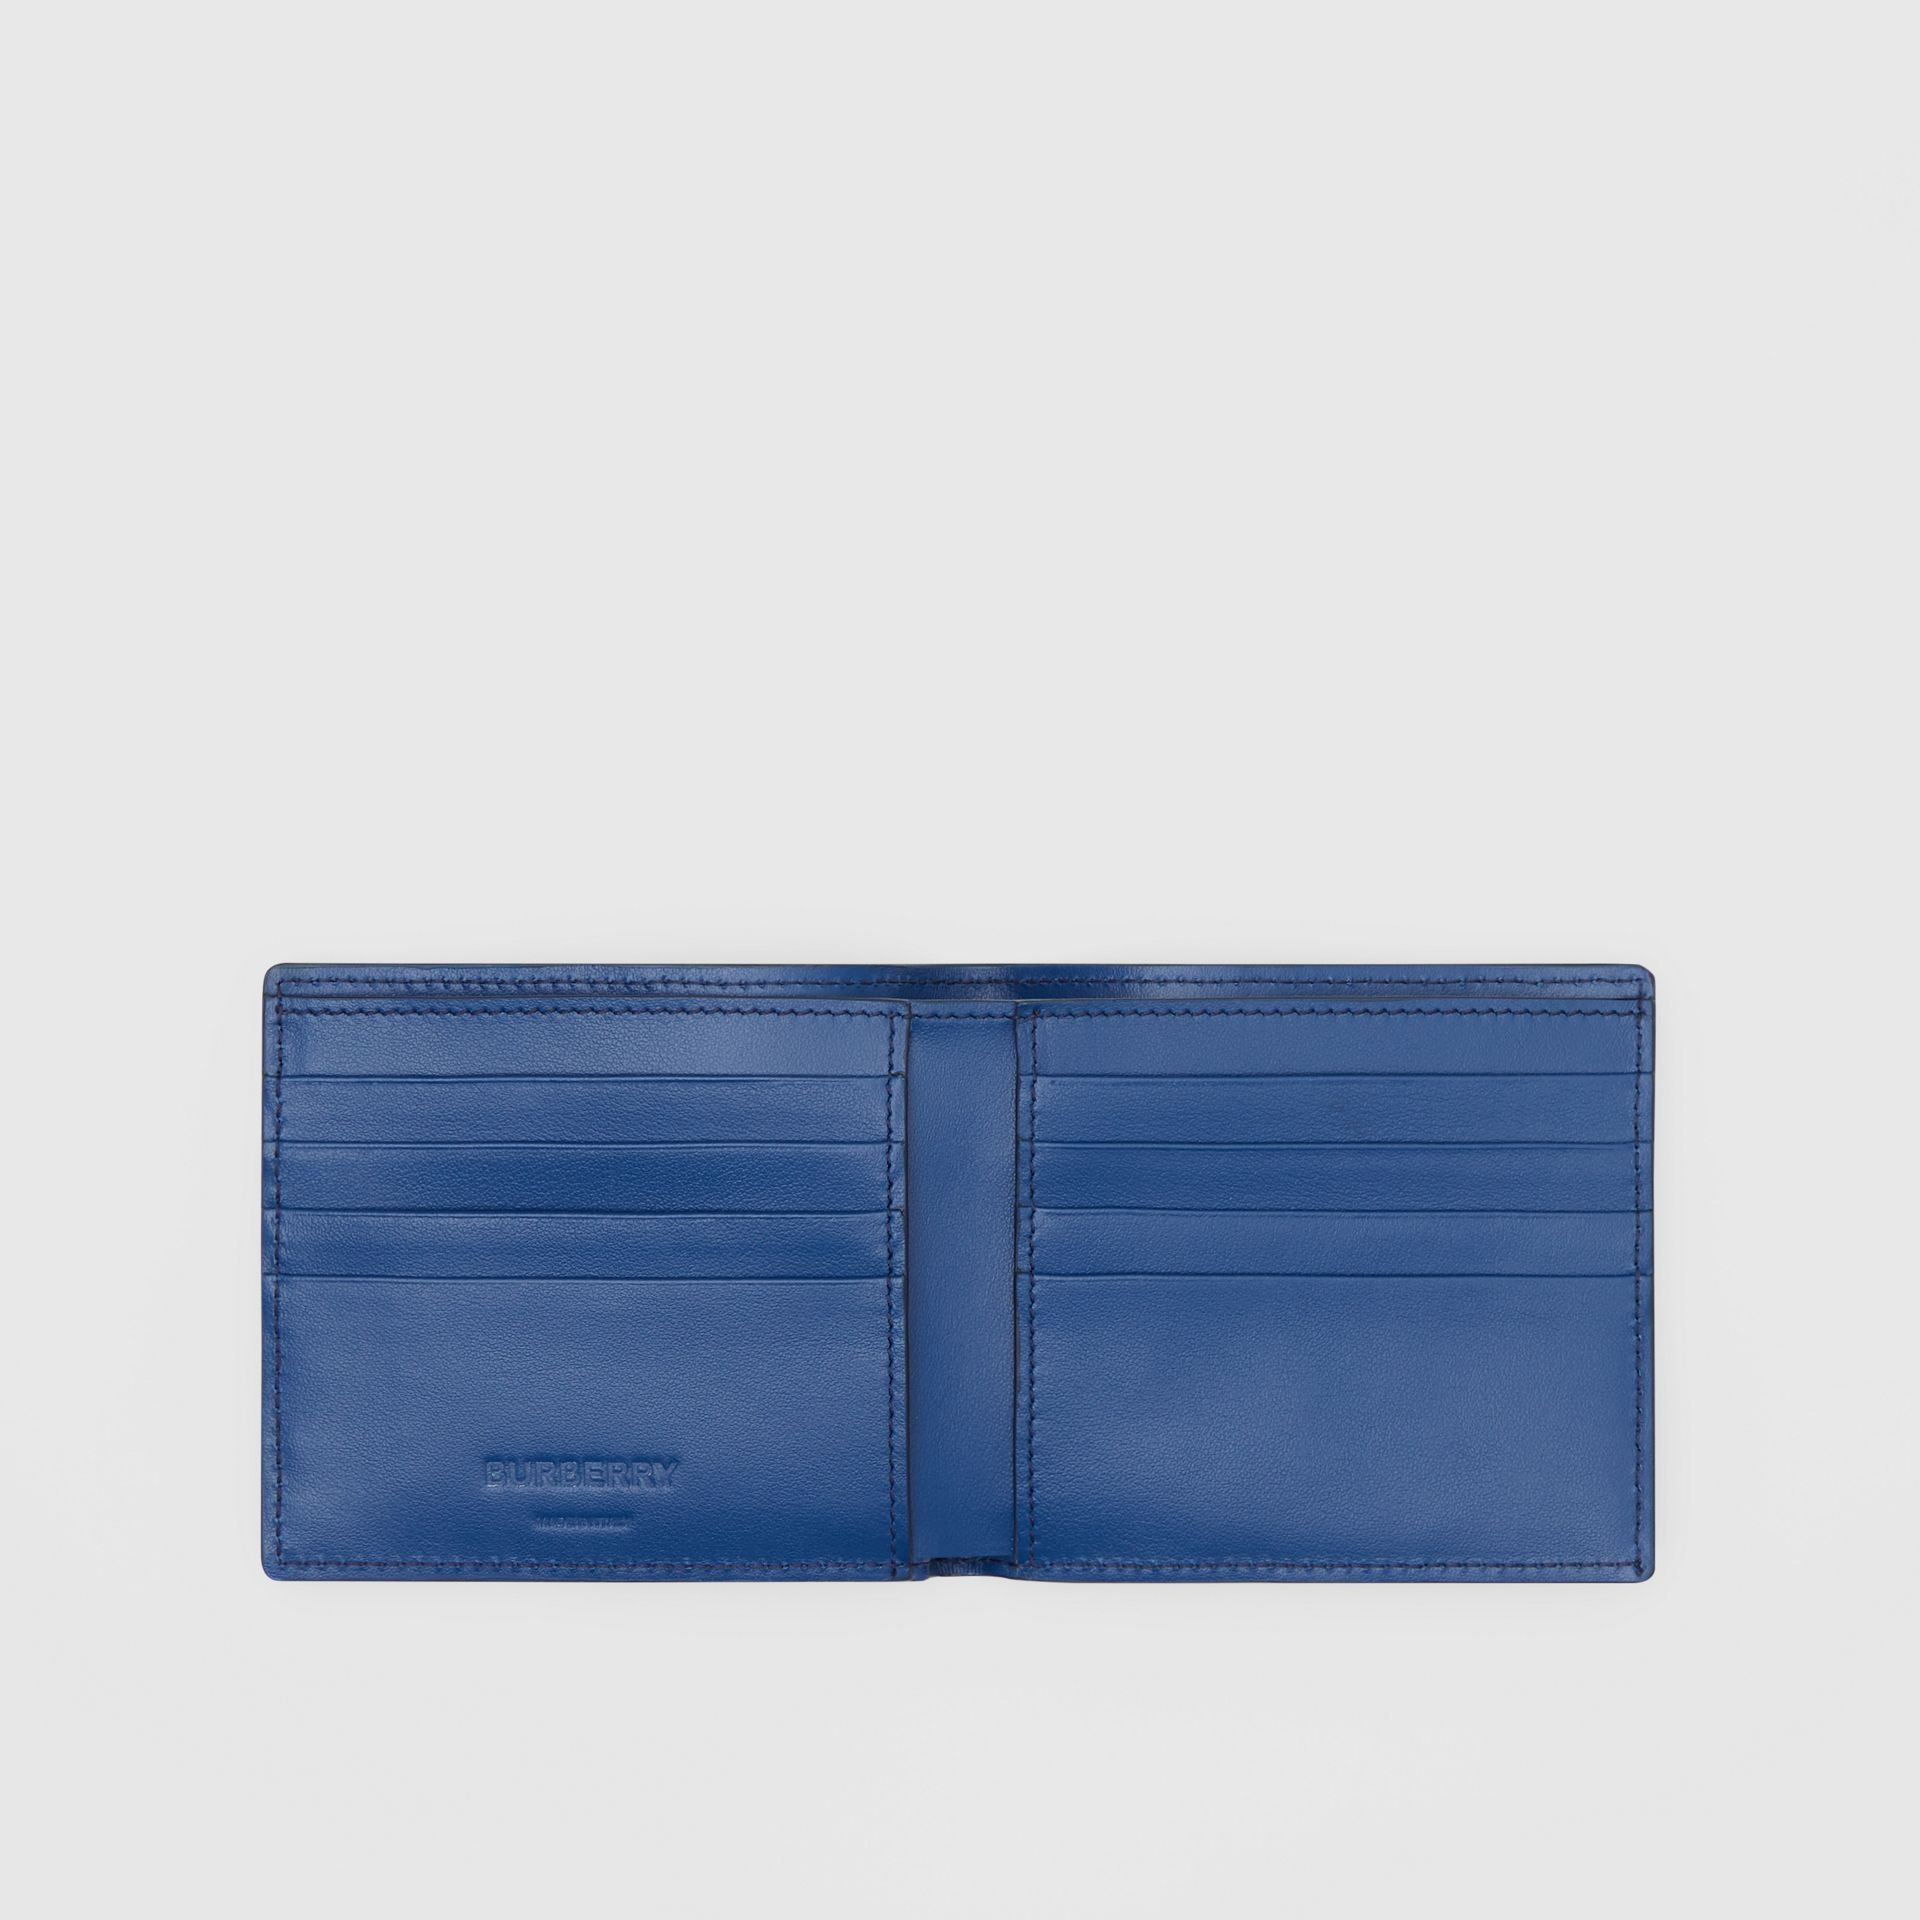 Monogram Leather International Bifold Wallet in Pale Canvas Blue - Men | Burberry United States - gallery image 2